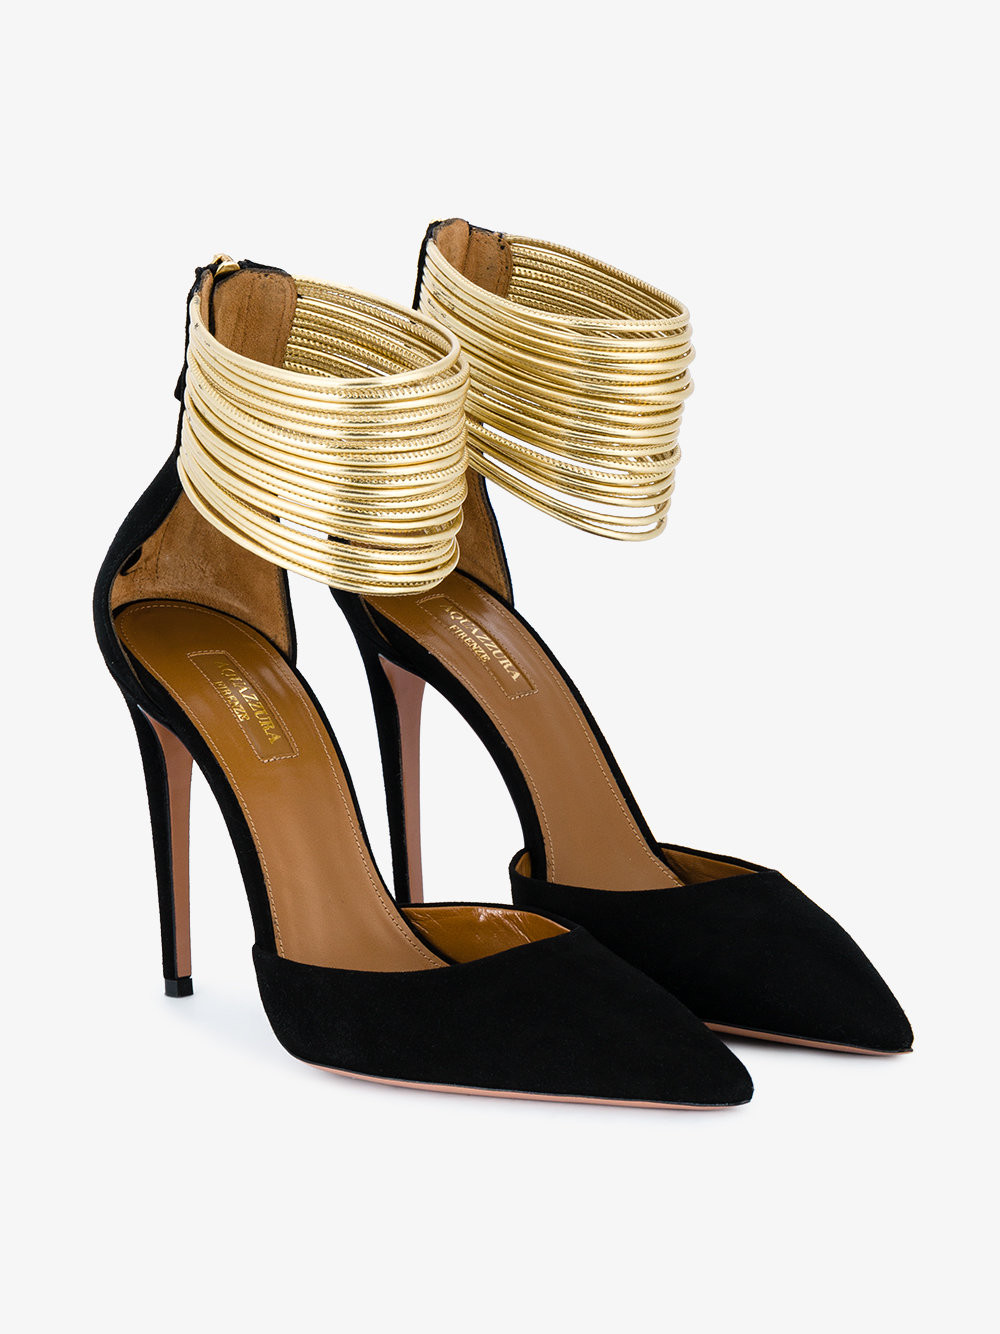 Aquazzura 'Hello Lover' Pumps